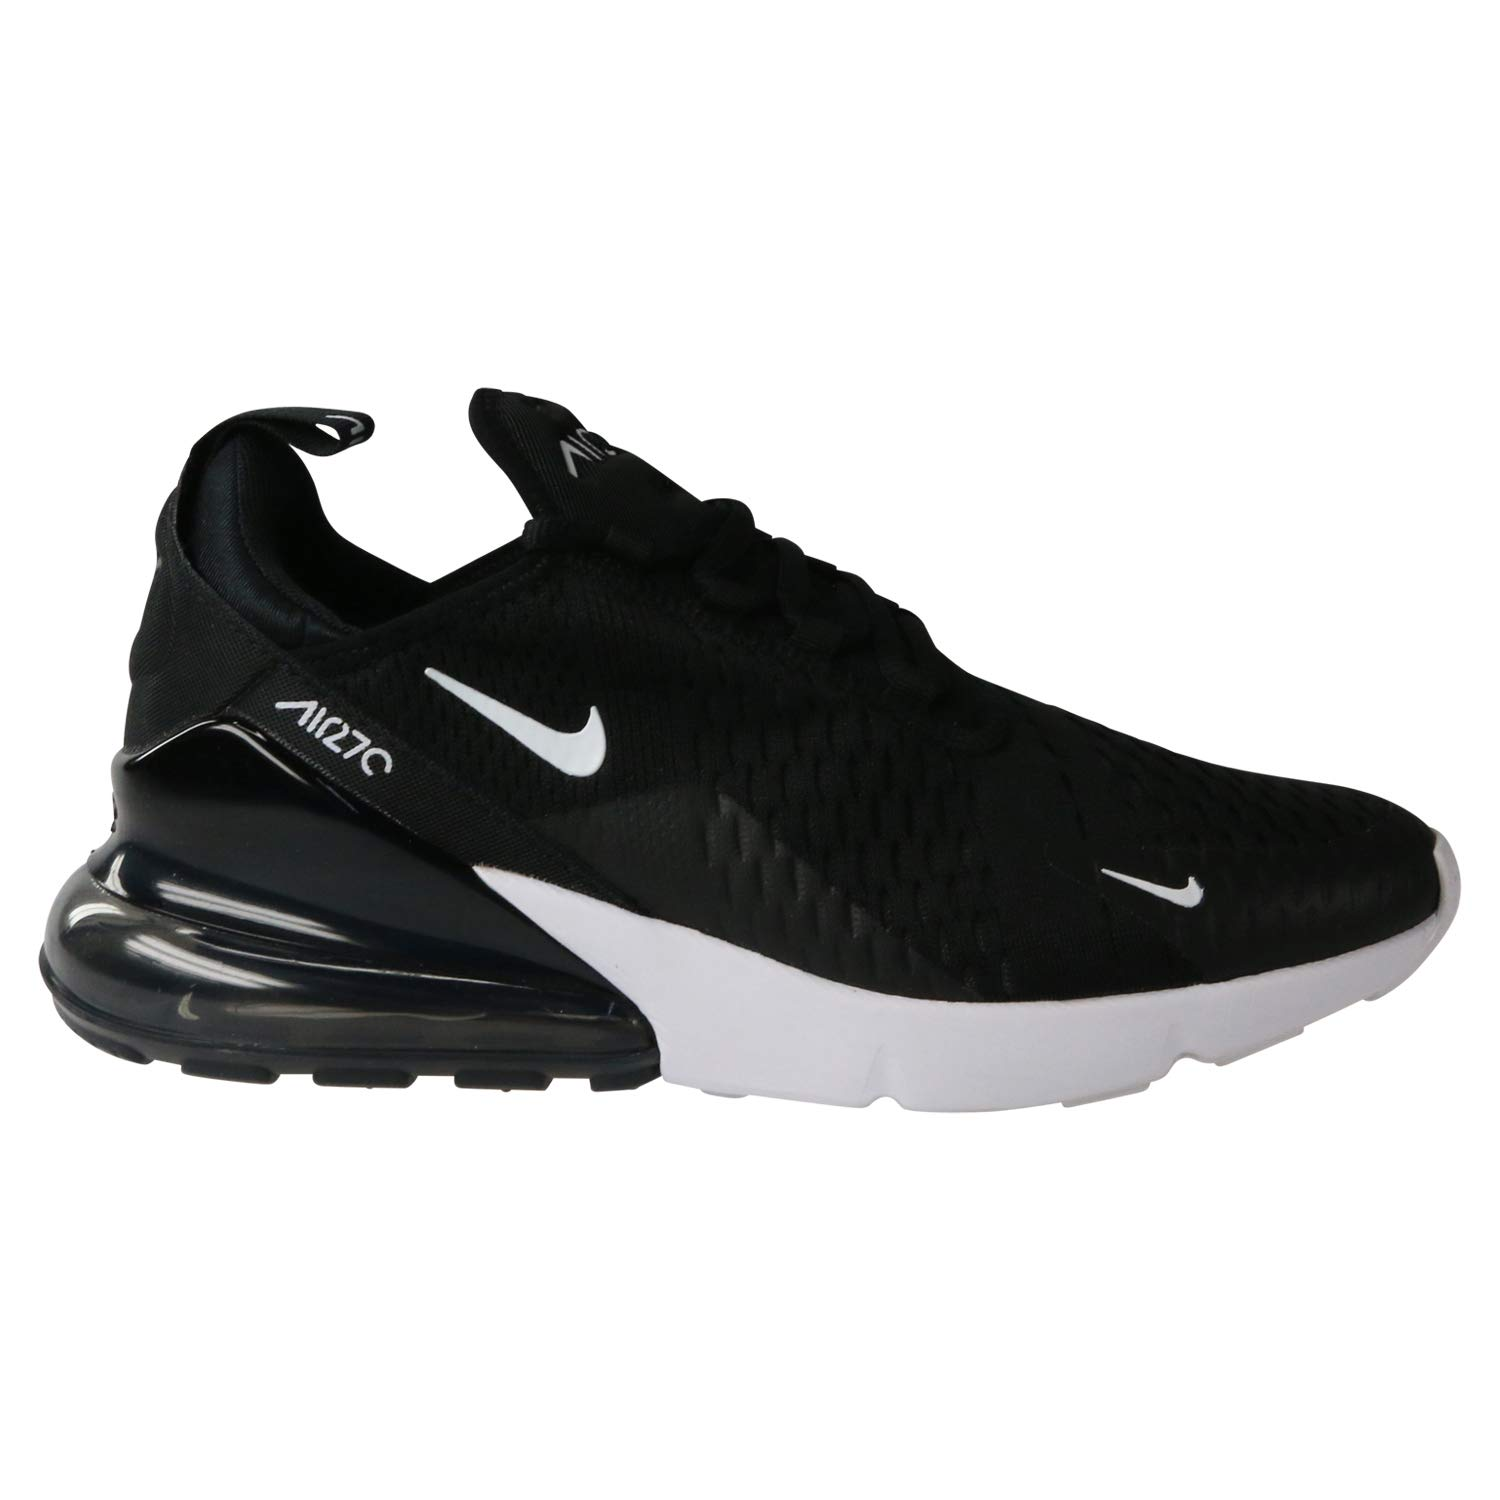 reputable site 7cd7e 61d67 Galleon - Nike Women s Air Max 270 Shoes (10, Black Anthracite)